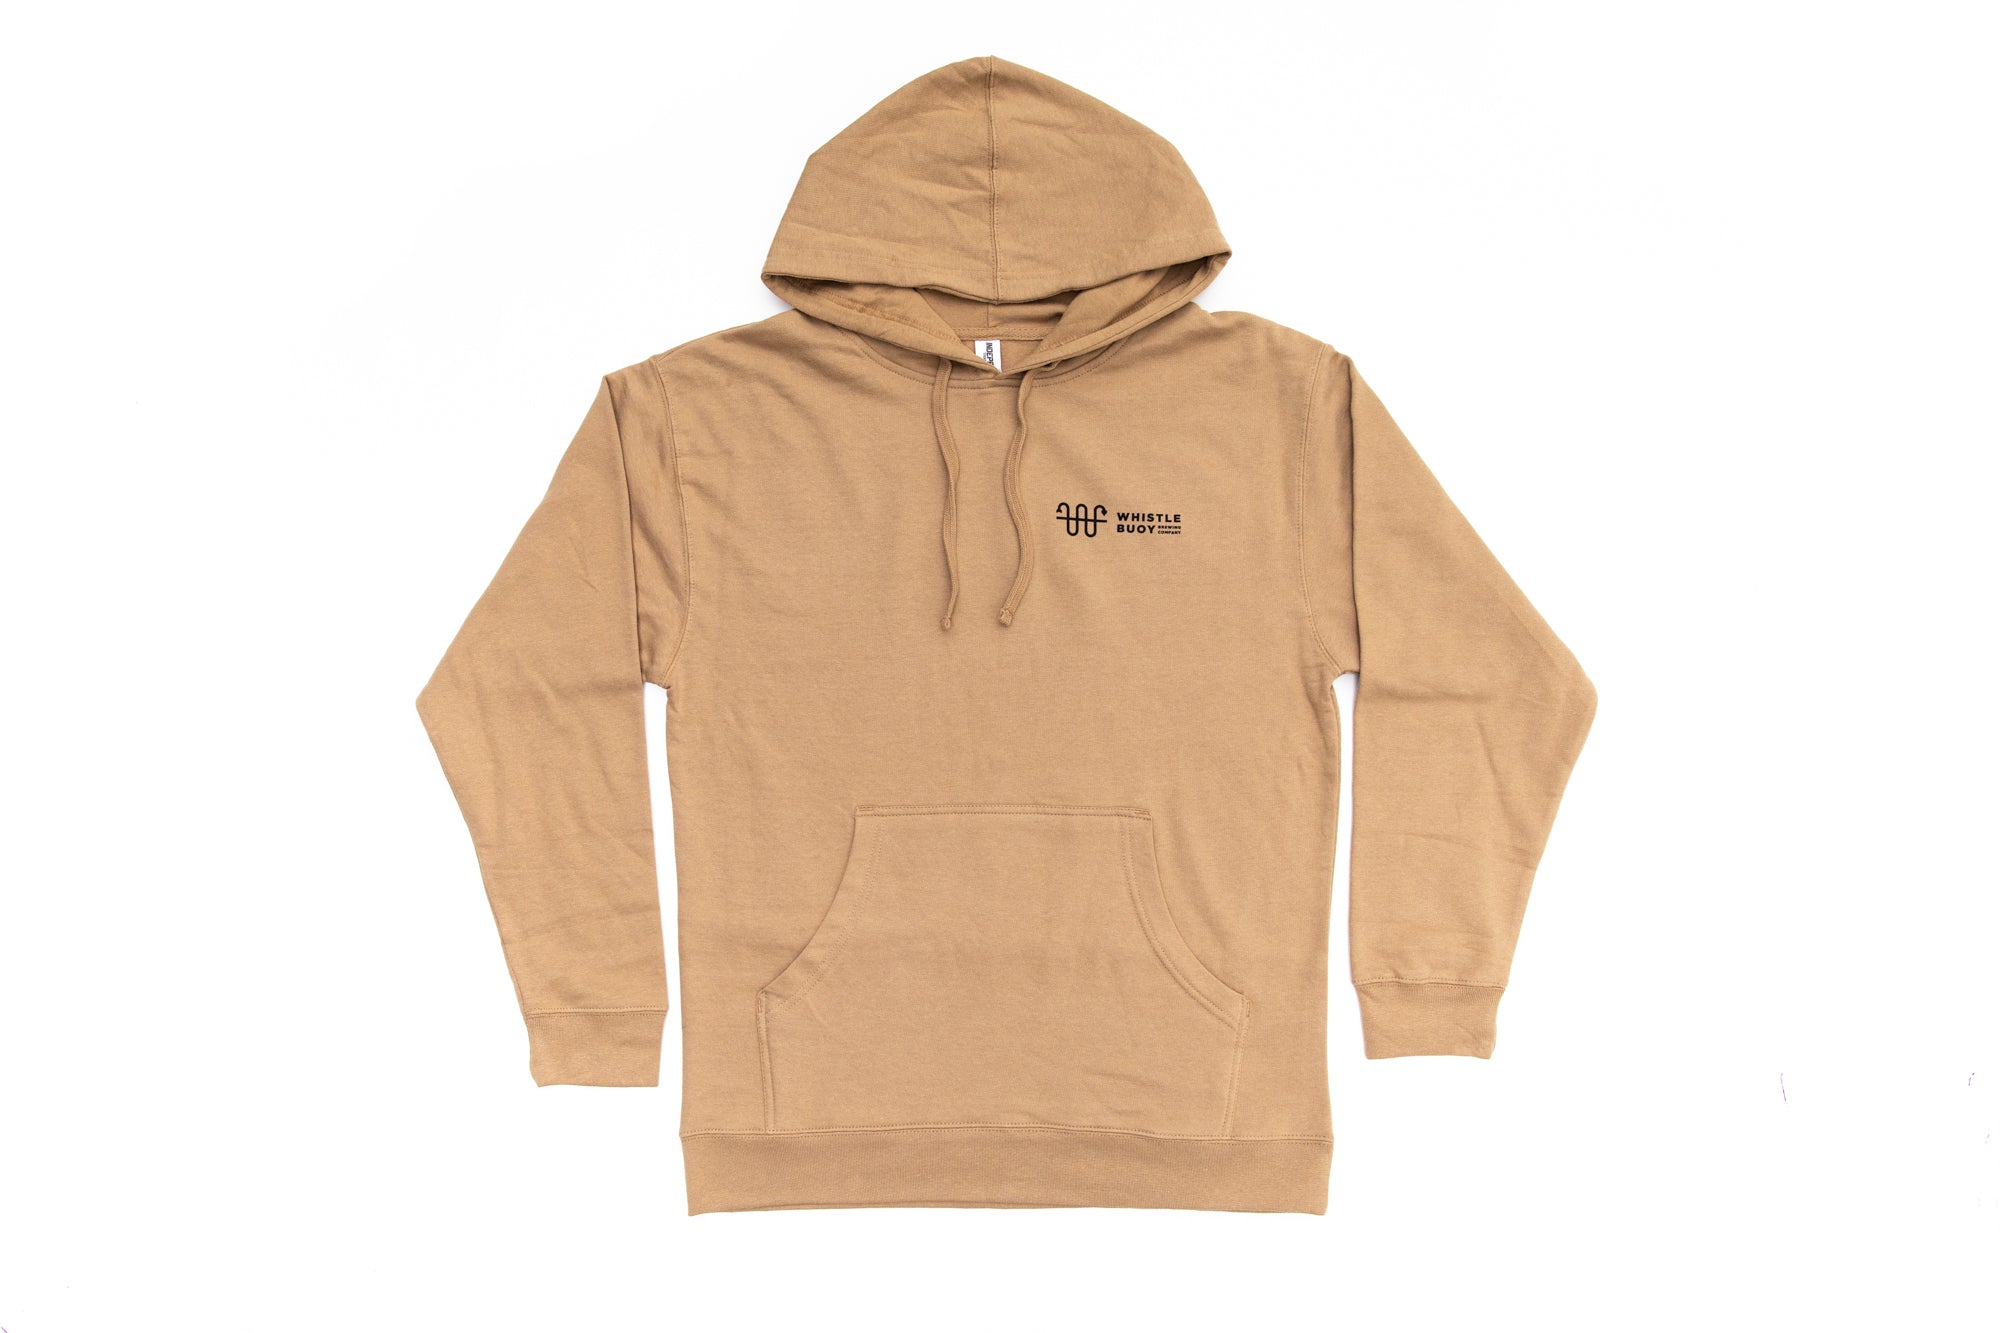 Front of Whistle Buoy Emblem Hoody - Sand colour studio shot